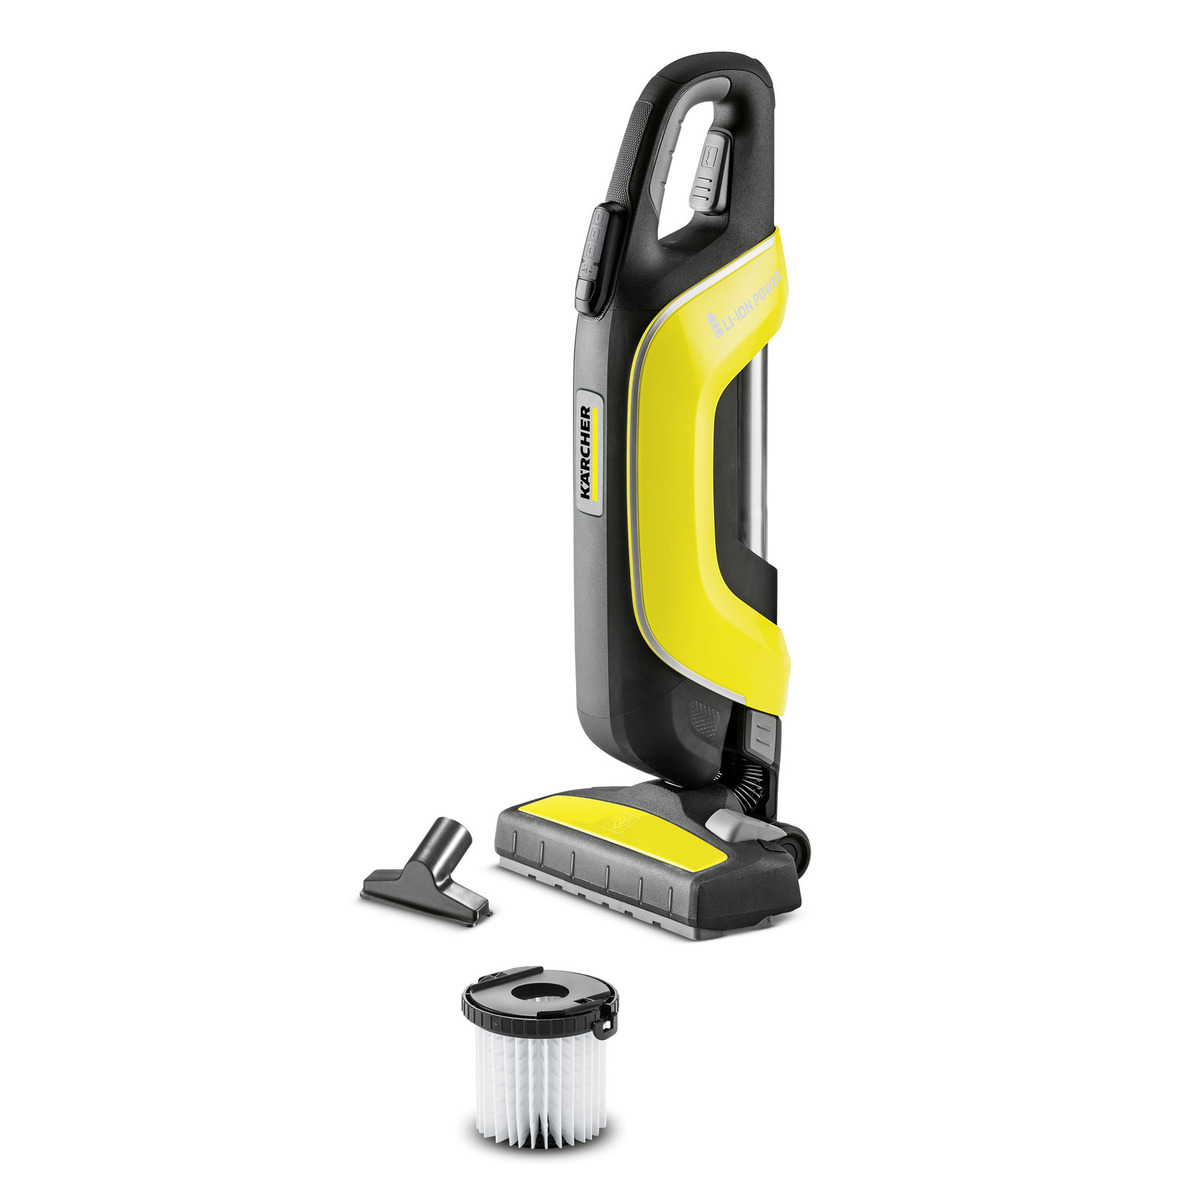 VC 5 Cordless *EU 1.349-300.0 KARCHER - KARCHER PREMIER CENTER